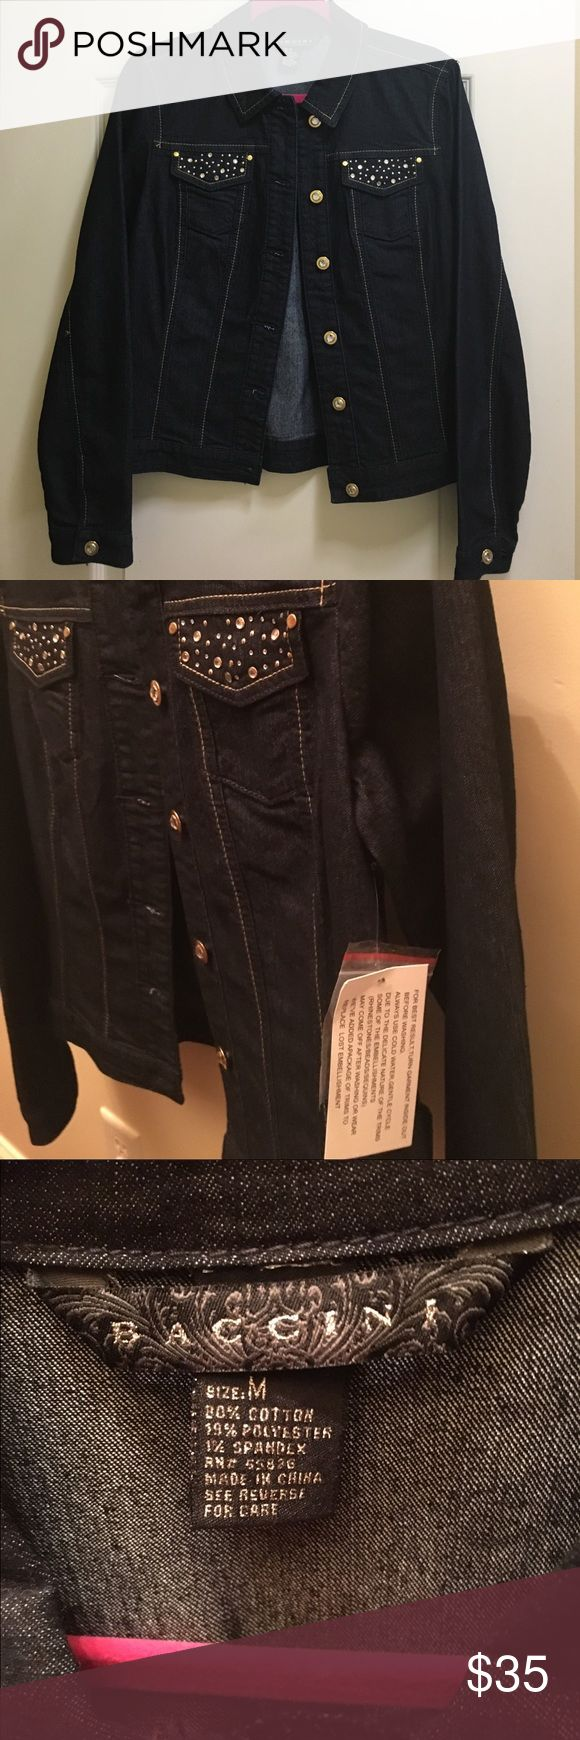 Baccini ladies denim jacket with bling Baccini Ladies medium denim jacket. Bling on pockets, cuff and buttons. Brand new with tags. Baccini  Jackets & Coats Jean Jackets